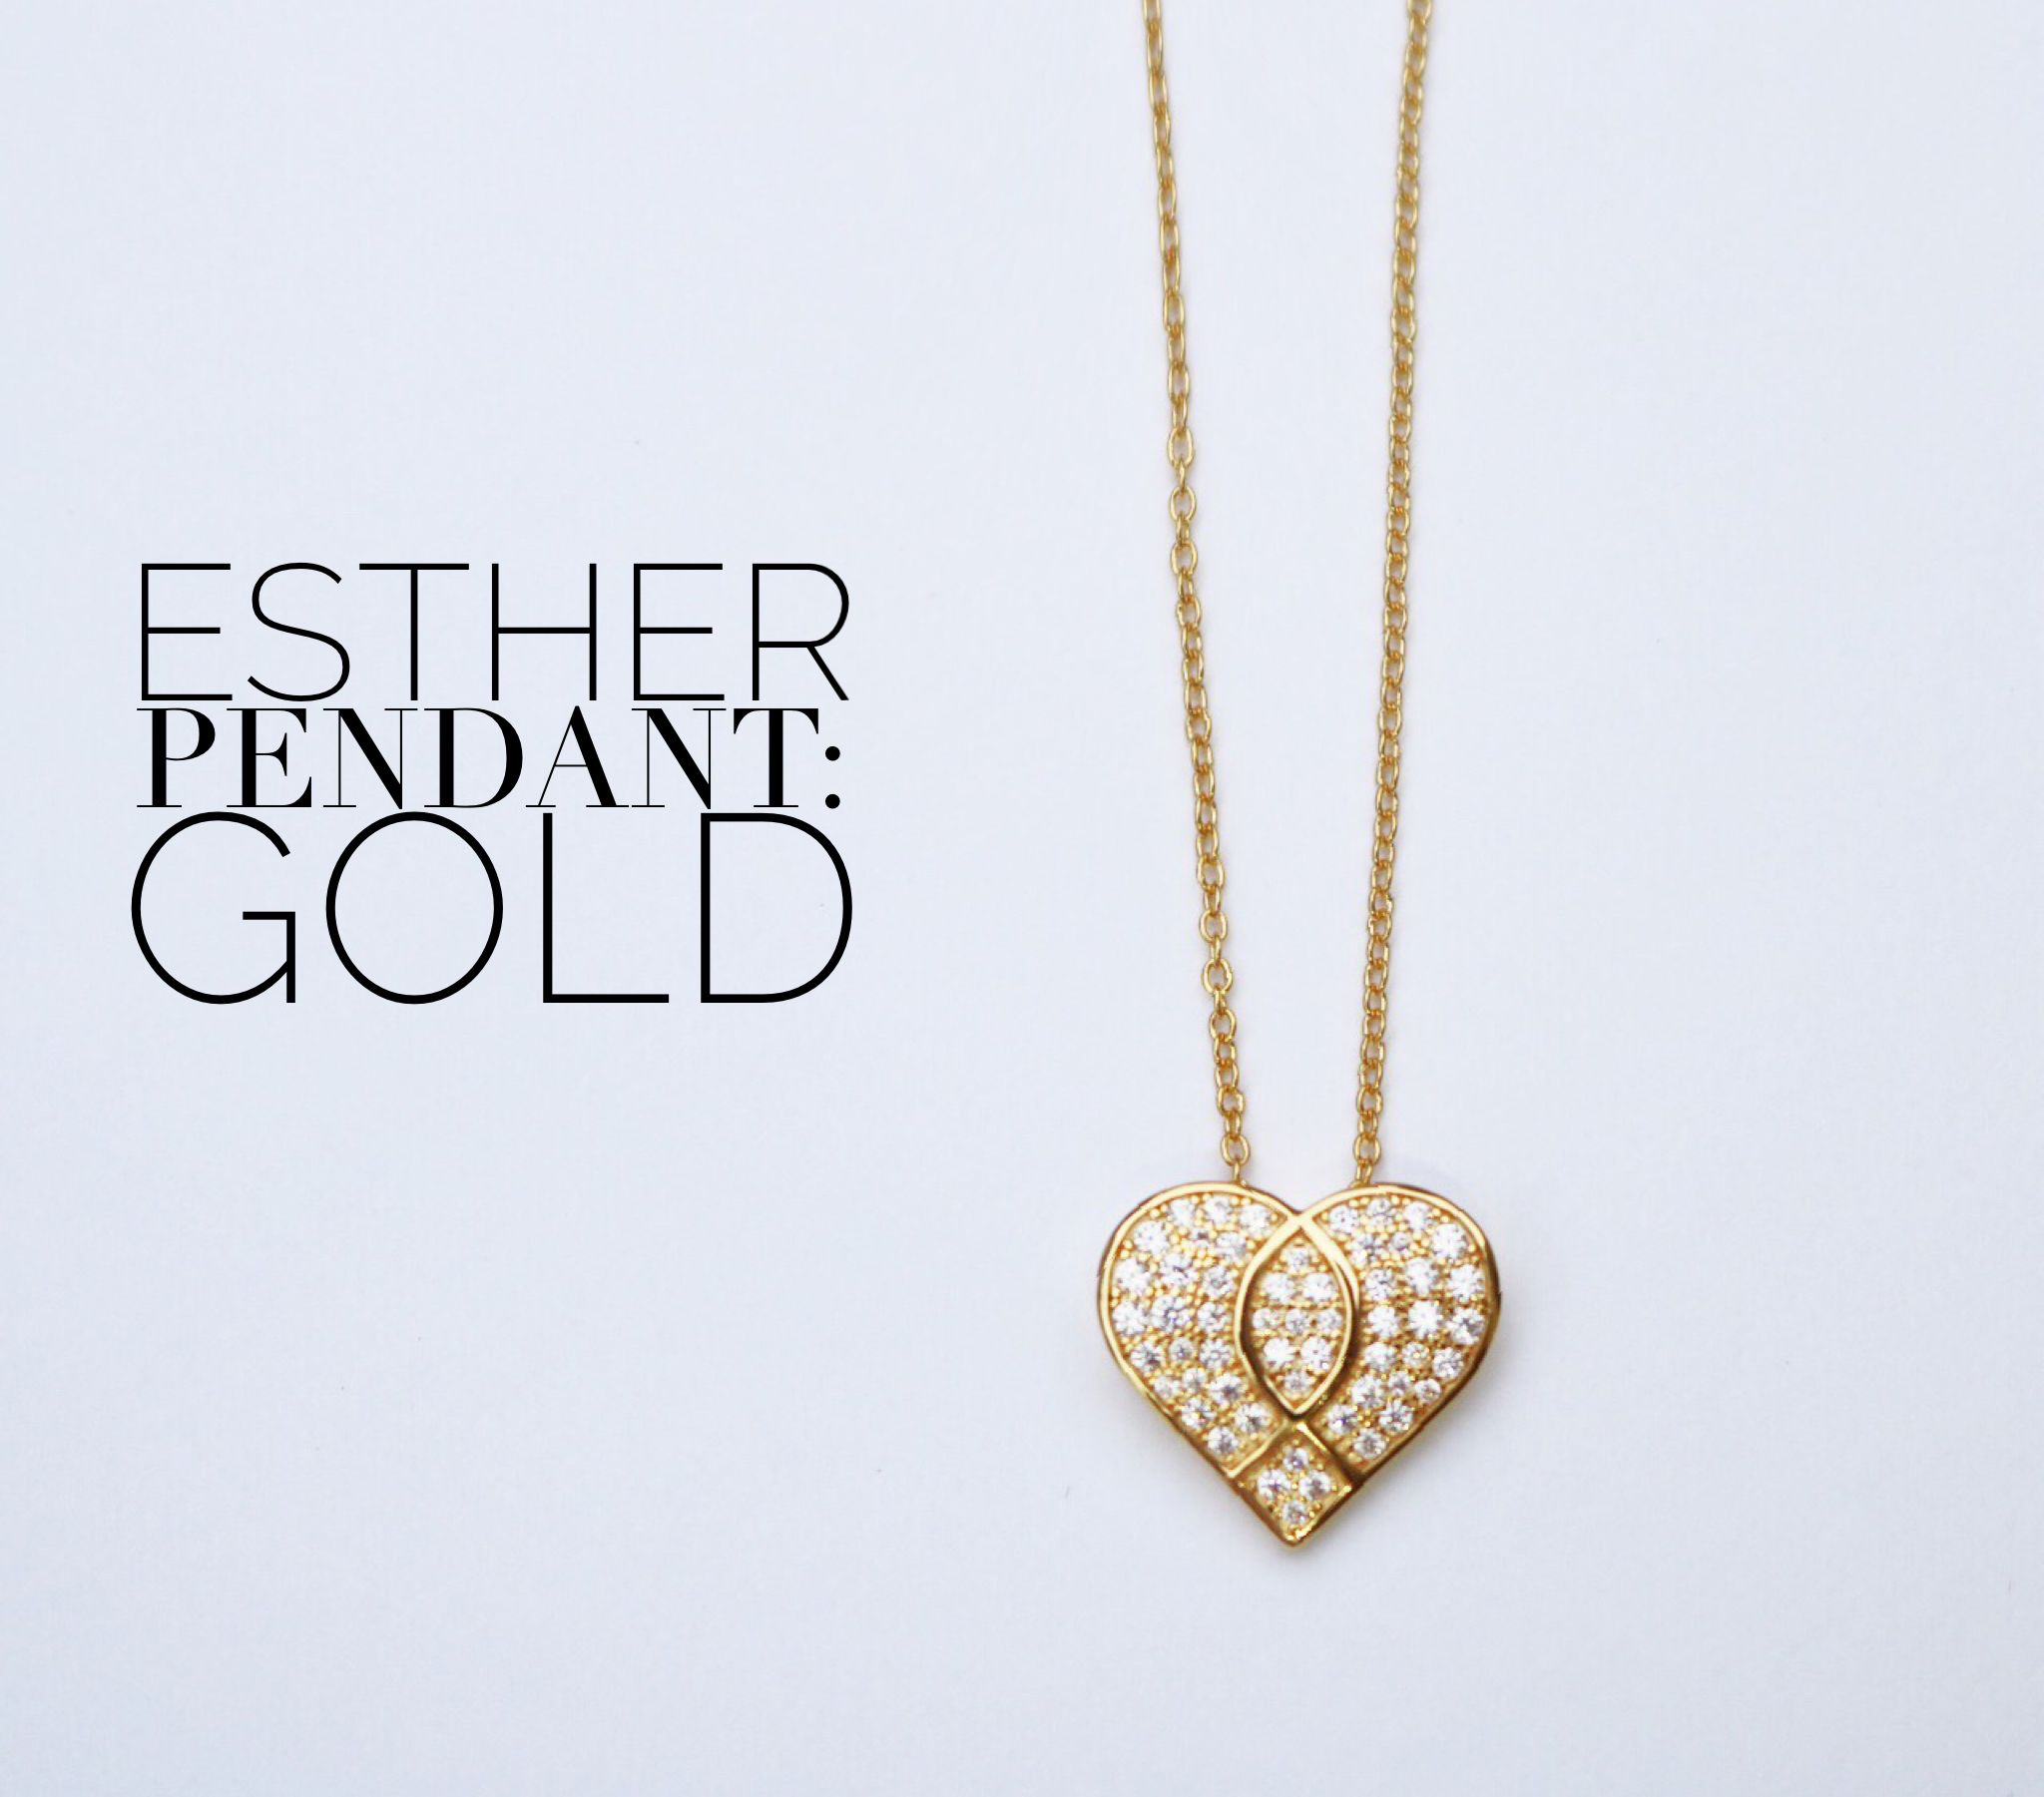 Order this beautiful 14 karat plated gold with pave sparkling order this beautiful plated gold with pave sparkling stones to celebrate the iconic christian fish symbol uniquely biocorpaavc Choice Image